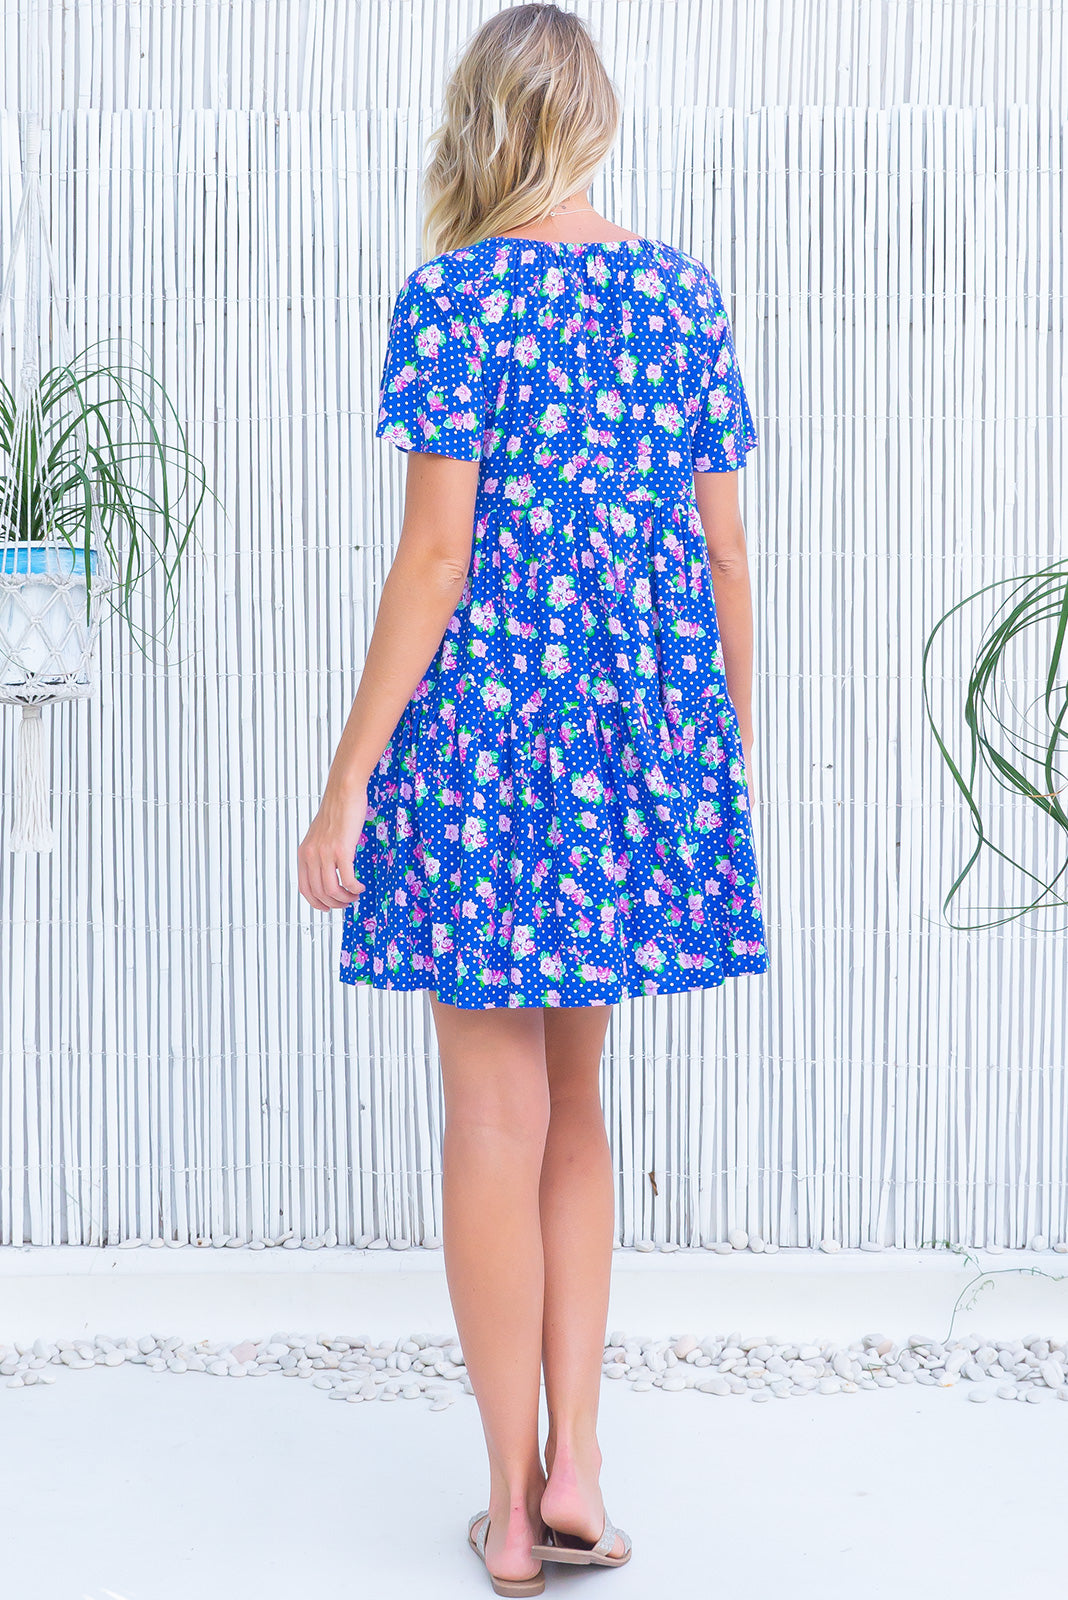 The Viva Cobalt Dress features adjustable neckline with tassel ended ties, elasticated back of neckline, short, flutter sleeves, side pockets and 100% rayon in cobalt blue base with pink florals and white polka dots.